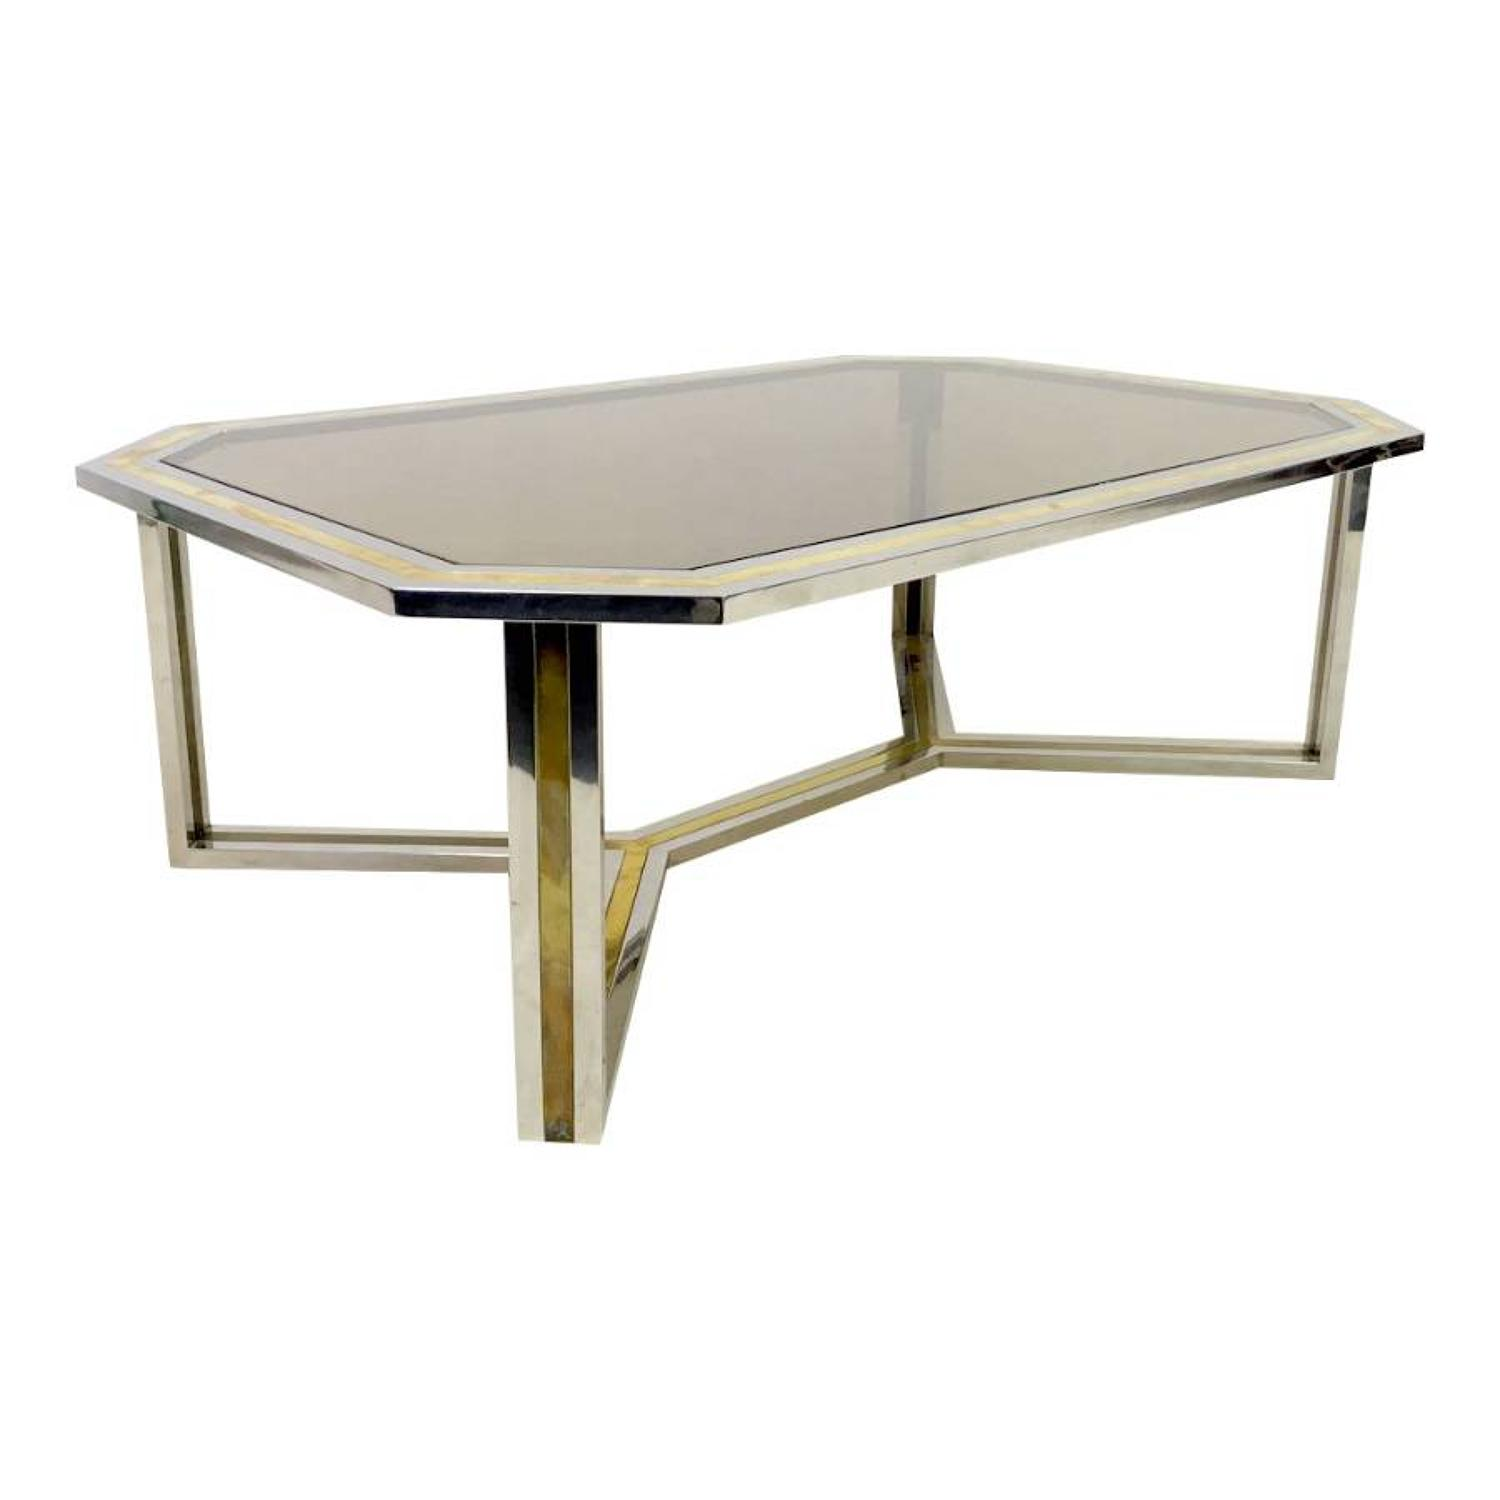 1970s Chrome and brass coffee table by Romeo Rega